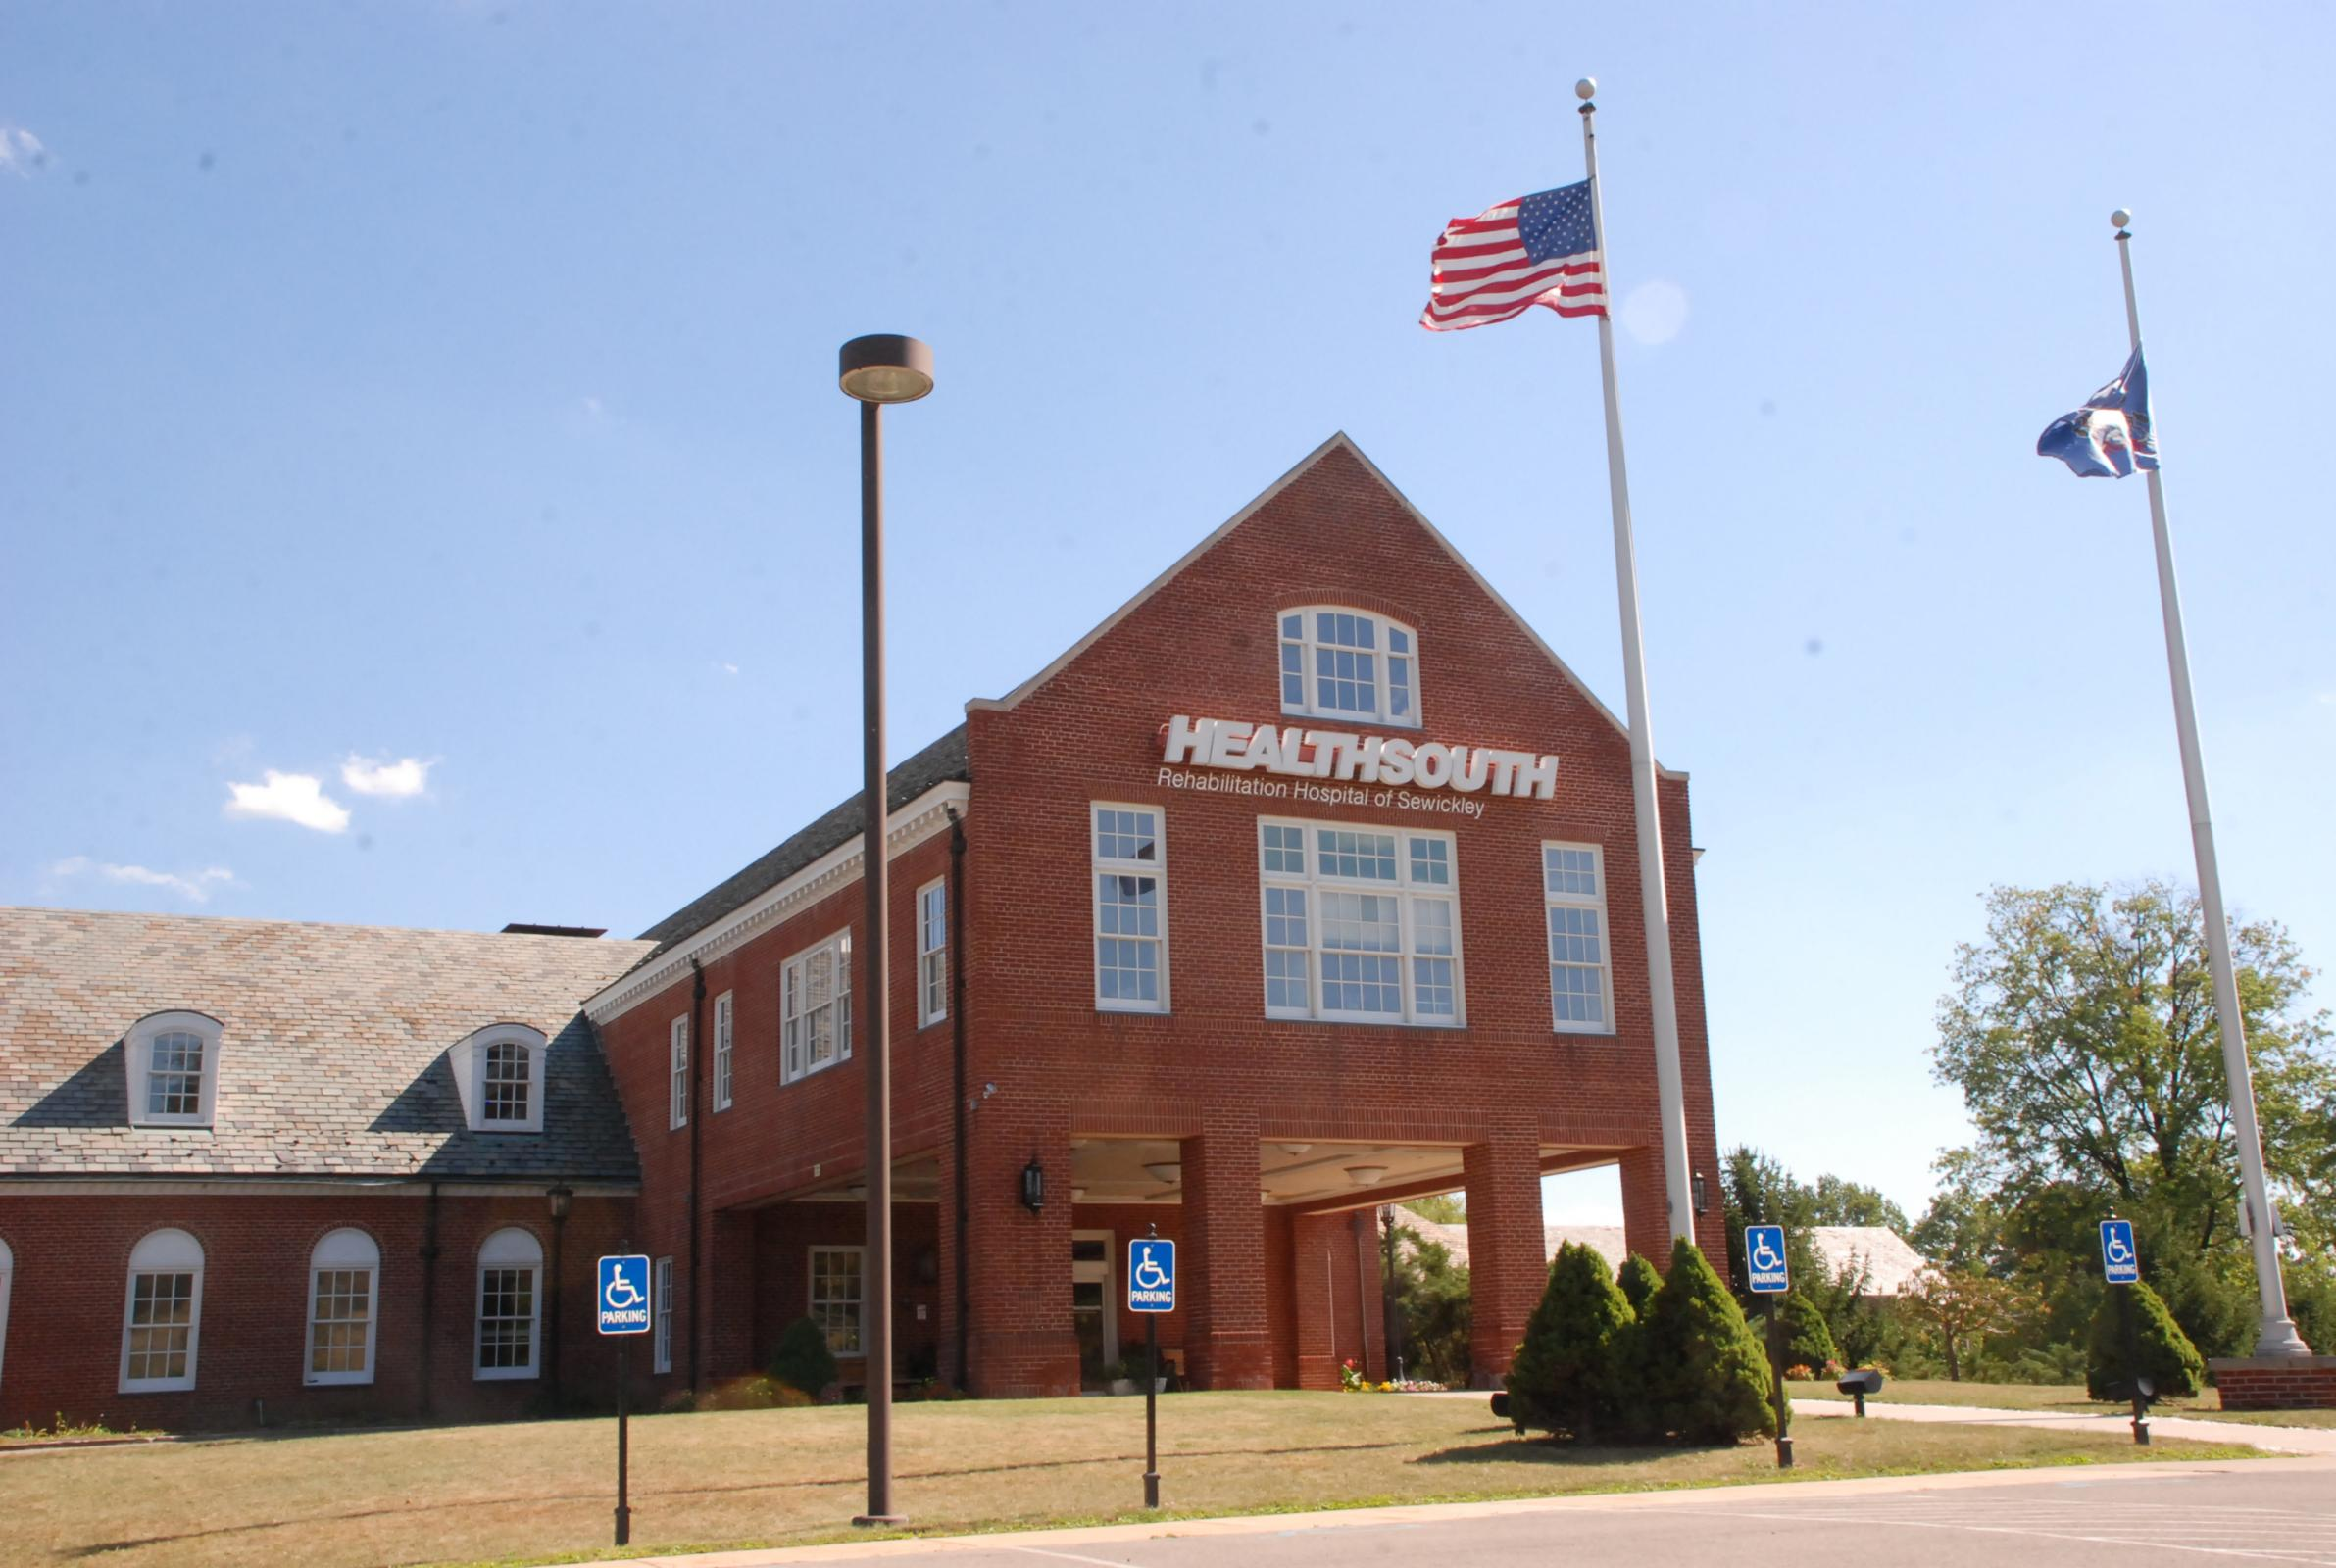 Healthsouth physical therapy - Healthsouth Physical Therapy 60